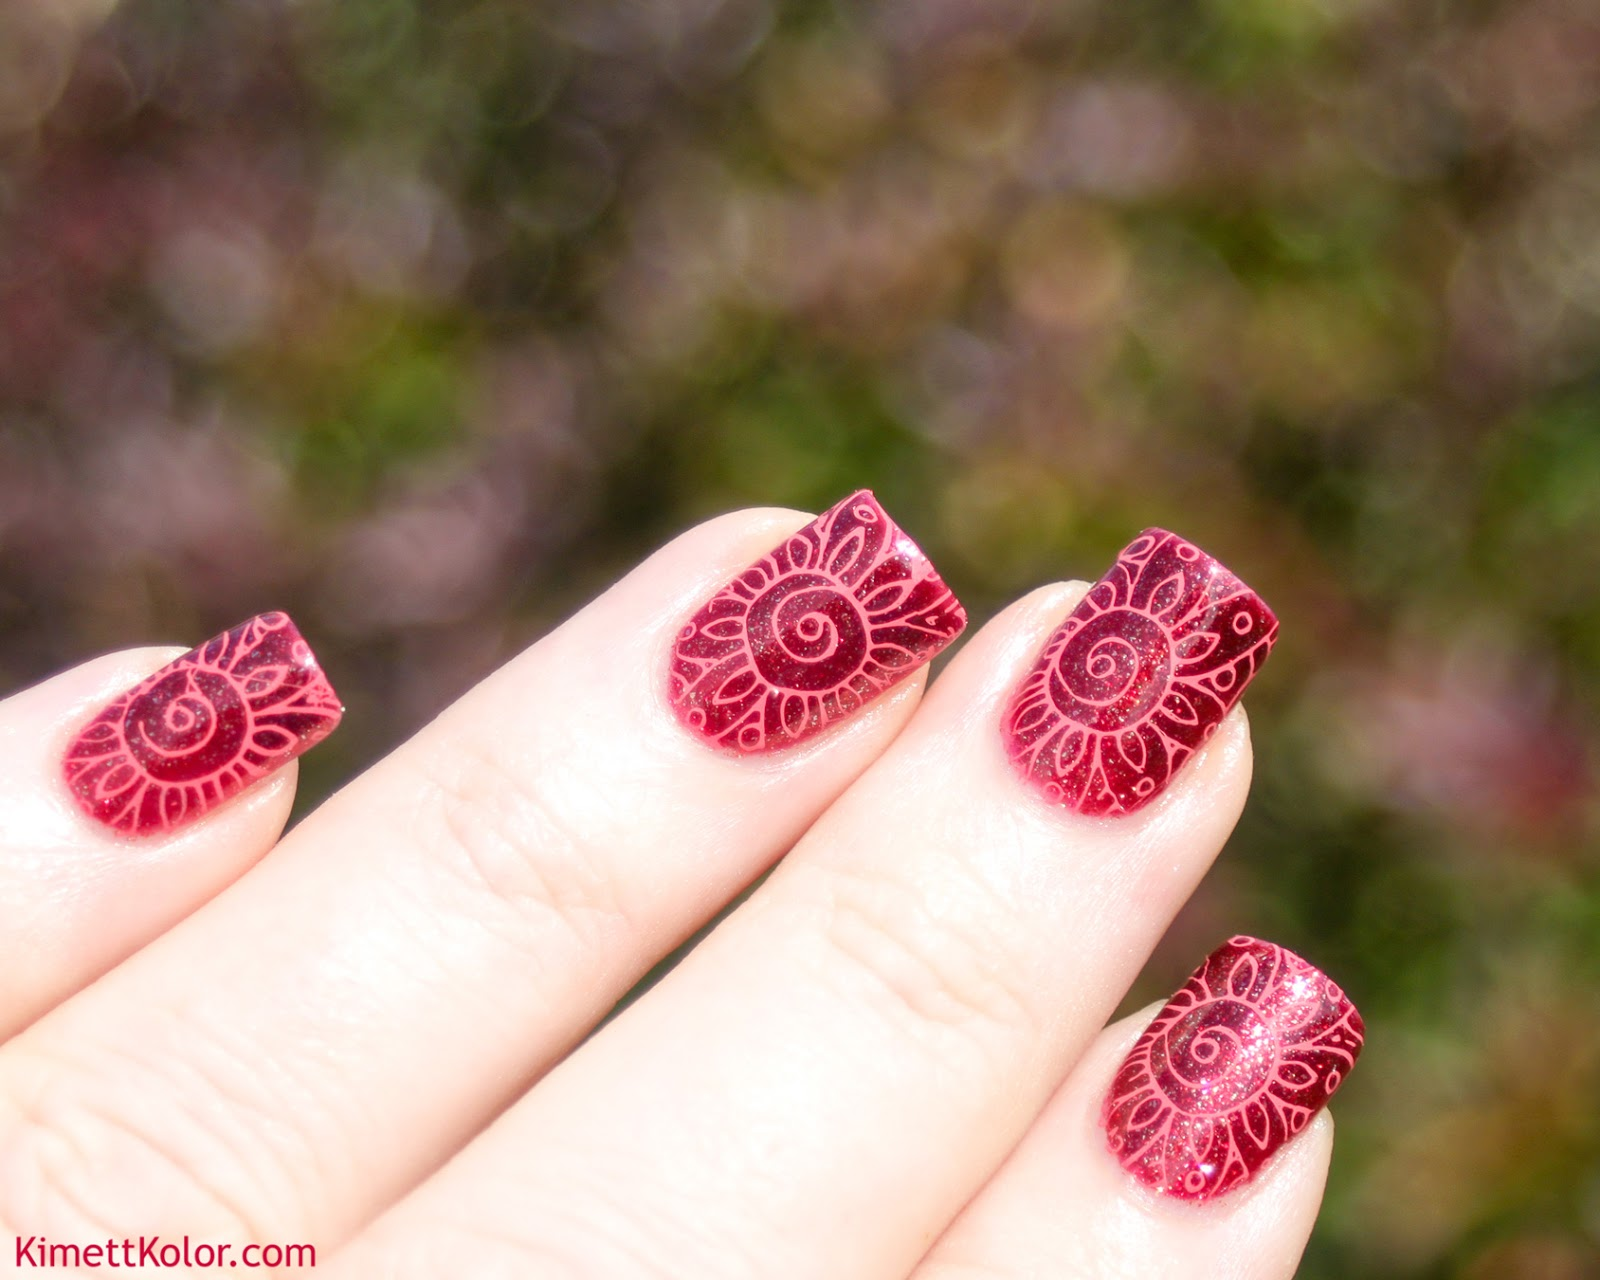 KimettKolor Crimson Flowers Stamping Nail Art